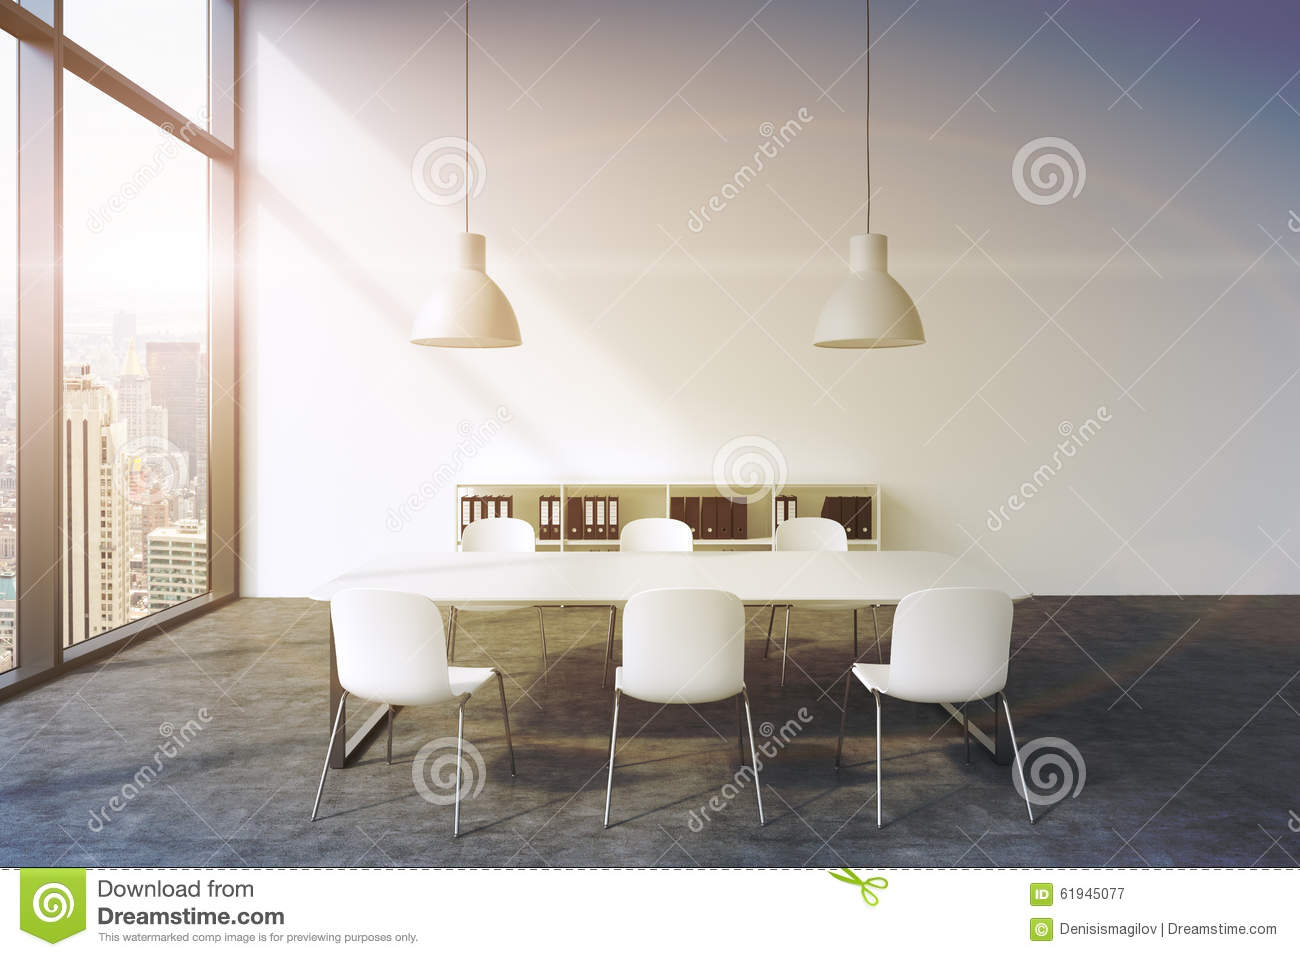 A conference room in a modern panoramic